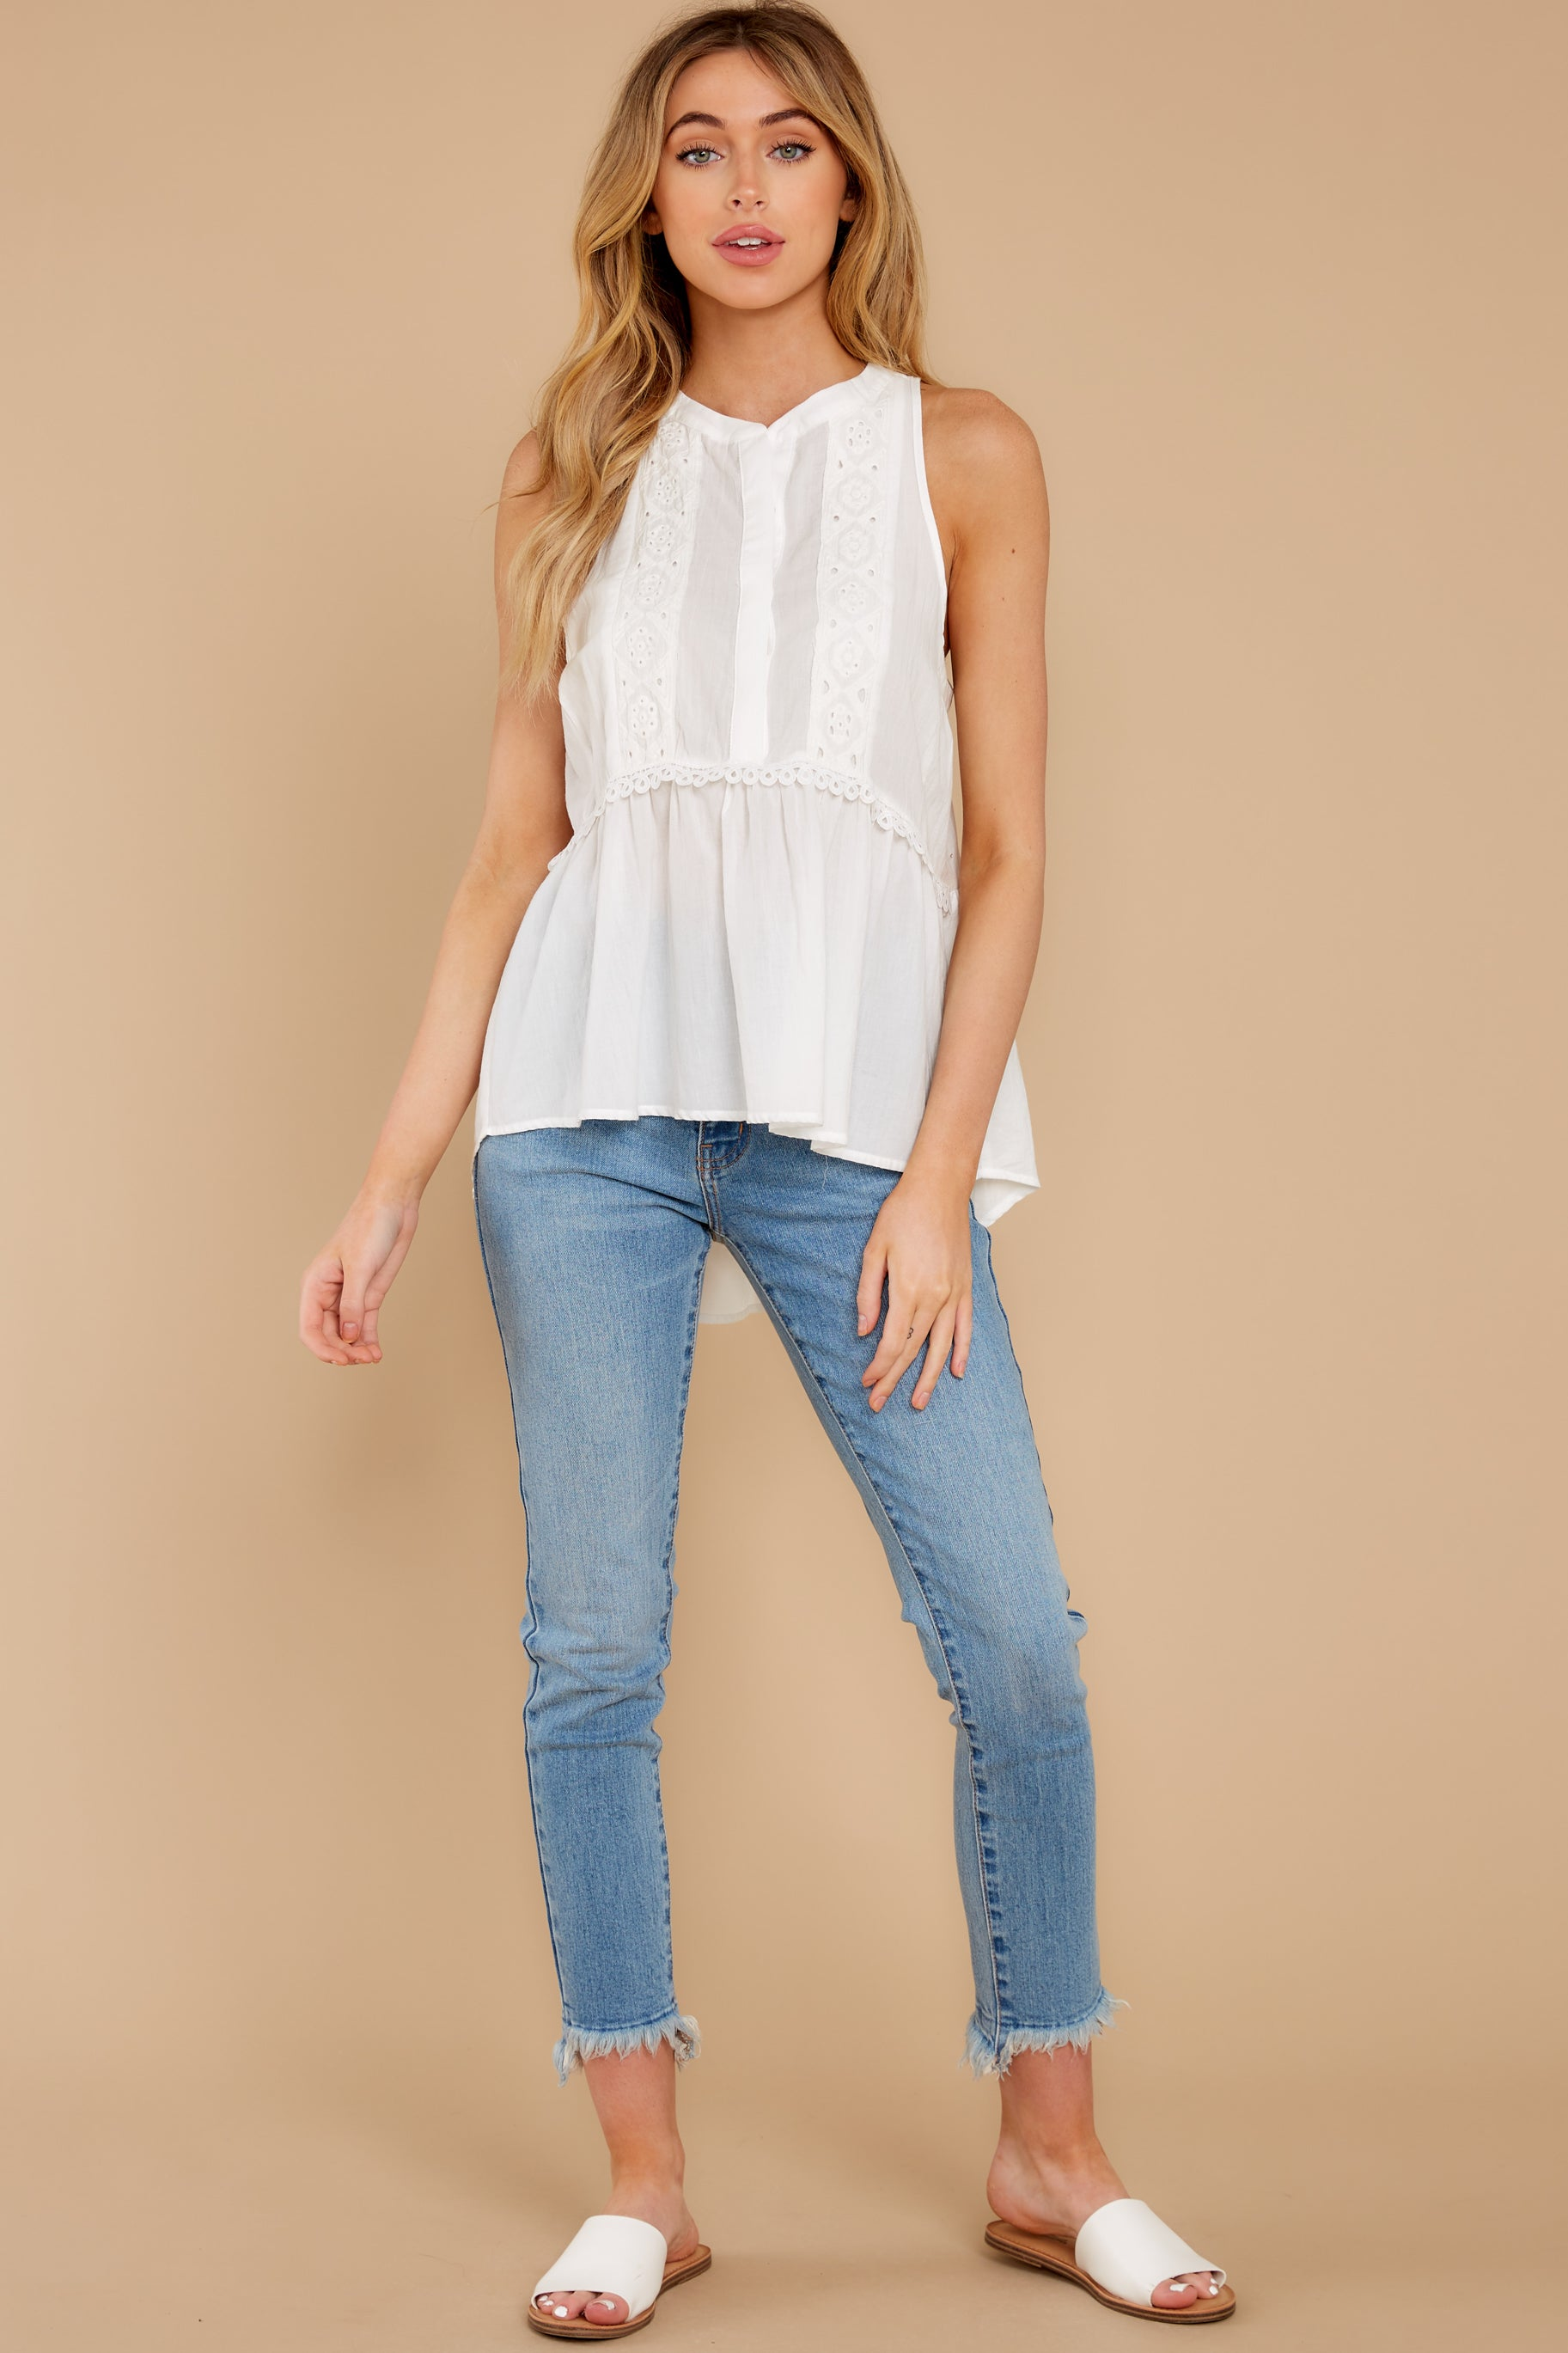 2 Angelic Whispers White Lace Top at reddress.com